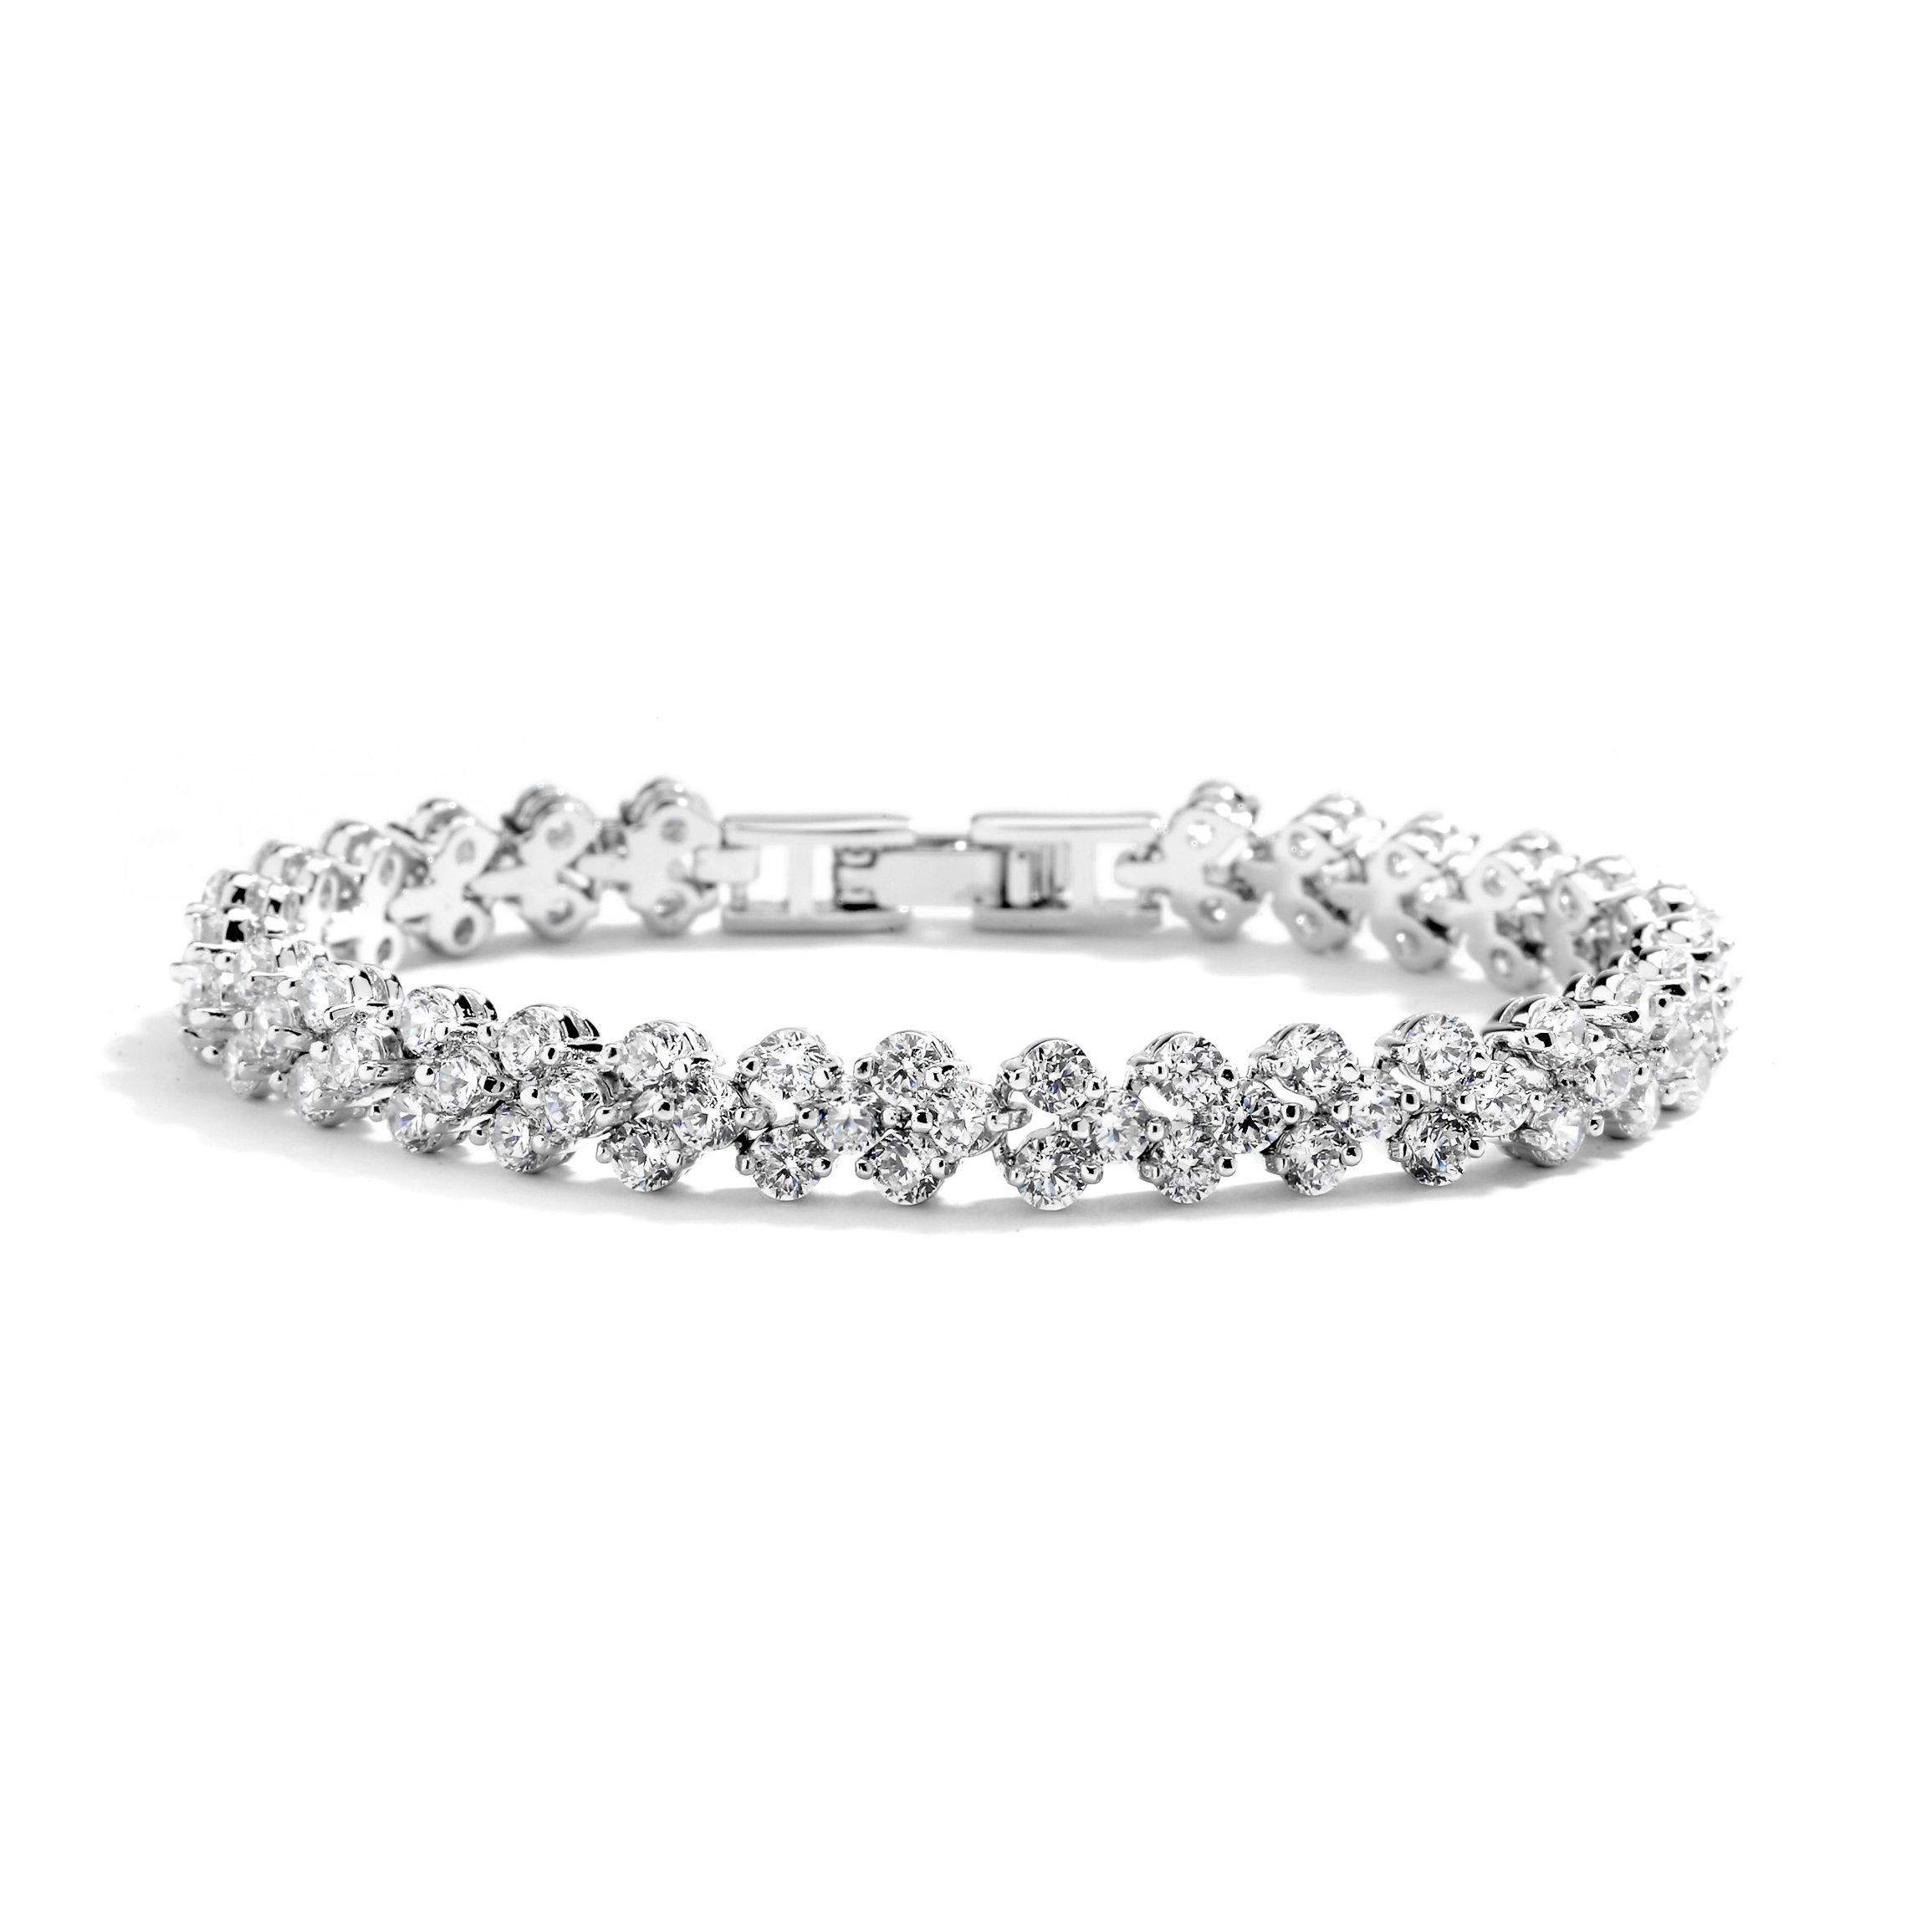 Mariell 6 3/8'' CZ Wedding Bridal or Prom Tennis Bracelet - Petite Size, Perfect for Smaller Wrist. by Mariell